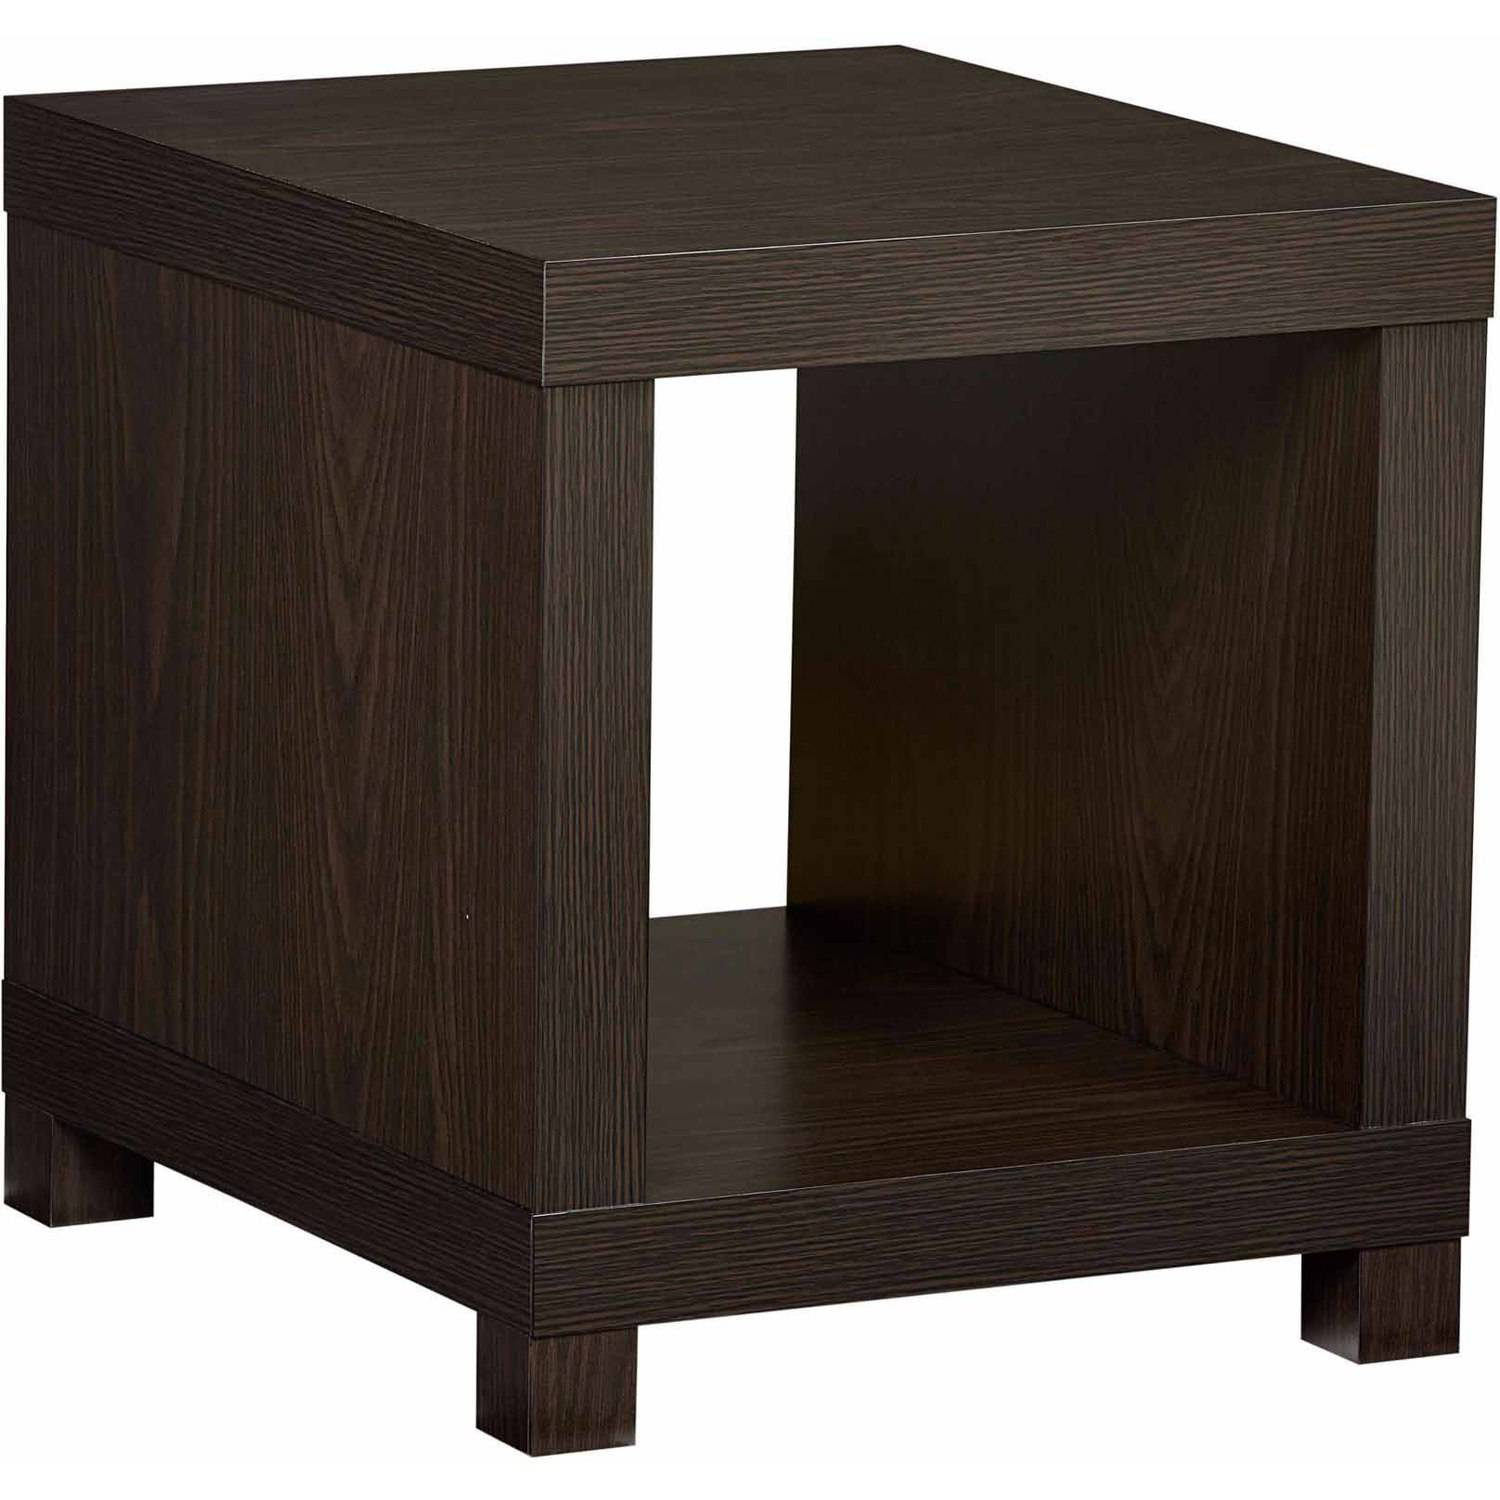 better homes and gardens accent table multiple colors mosaic tile entry lamps moroccan solid wood end tables teal corner standard contemporary bedside winners only furniture ikea